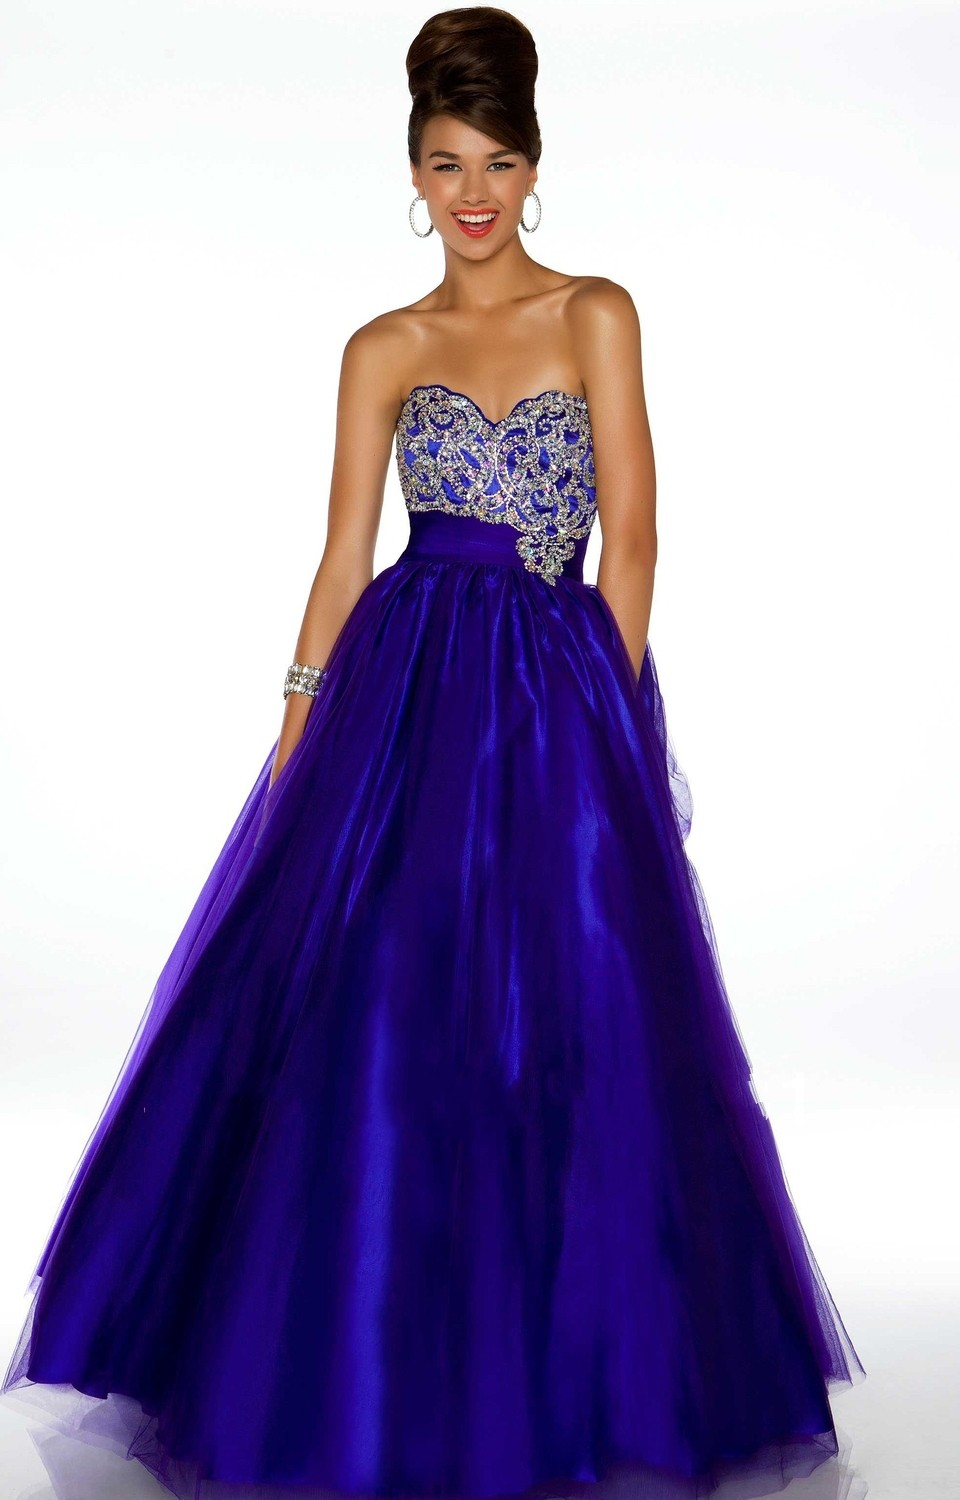 Wholesale 2015 New Ball Gown Prom Dresses Royal Blue ...  Wholesale 2015 ...